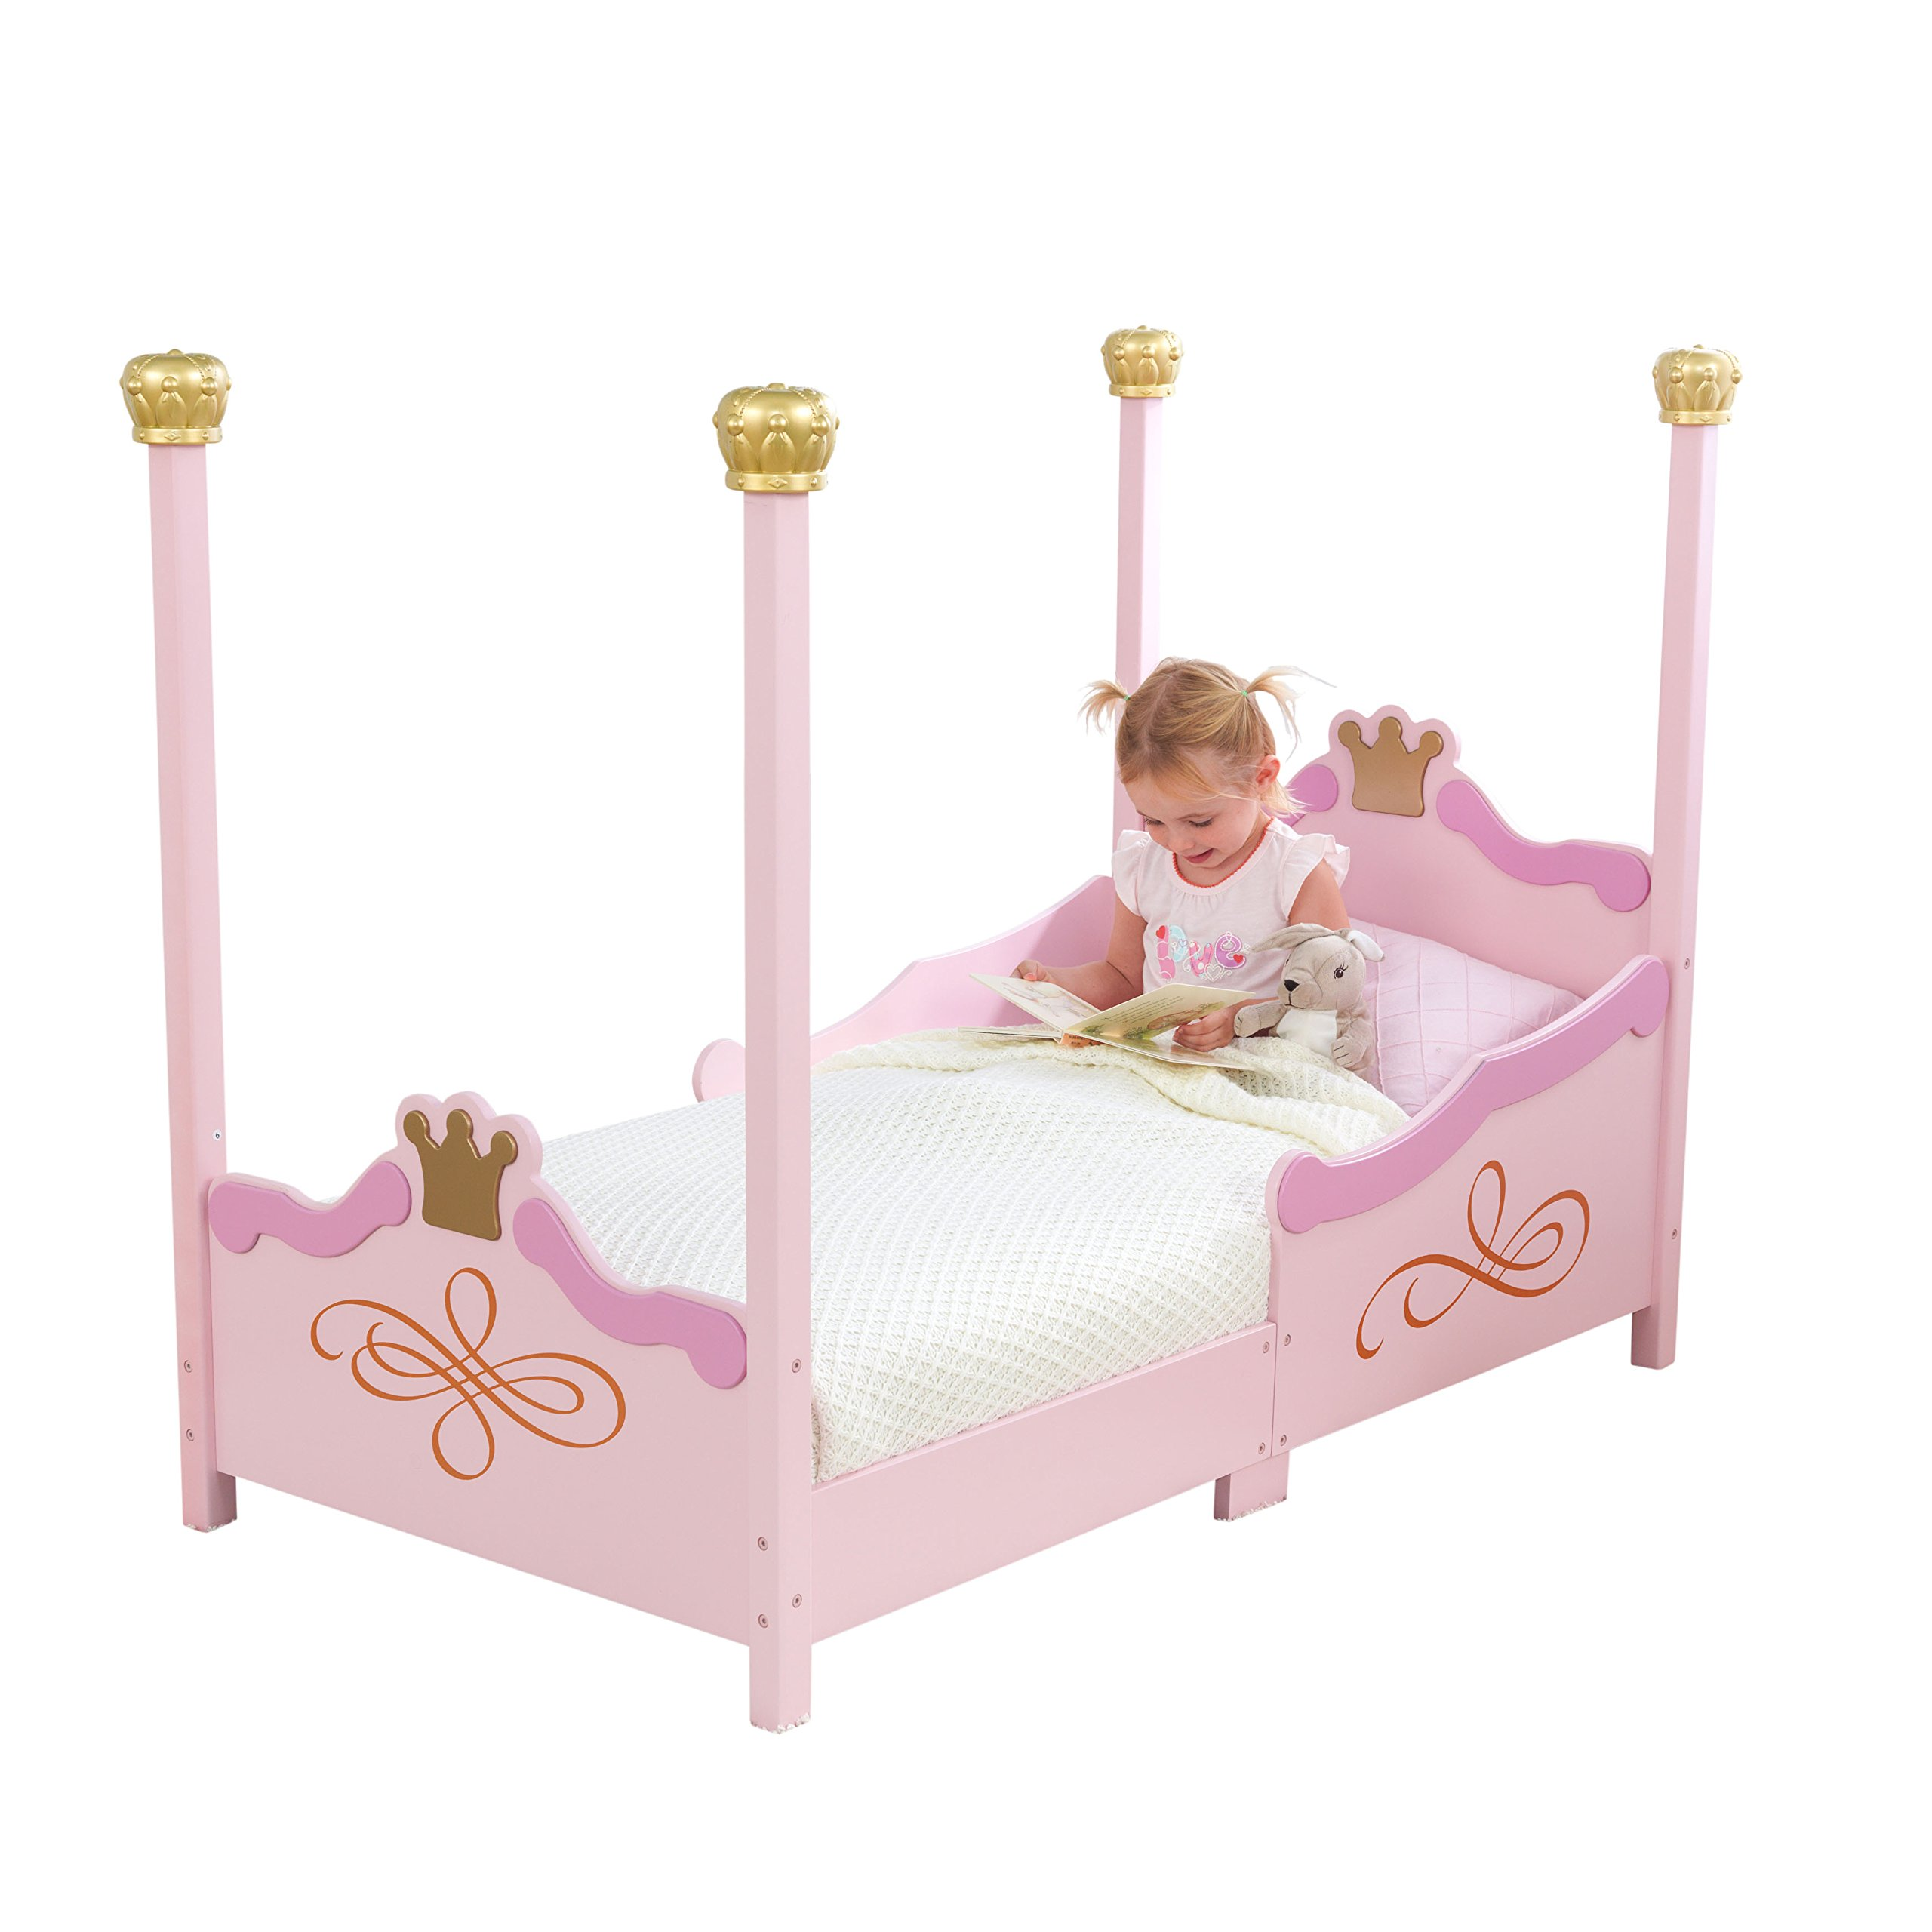 Princess Toddler Bed